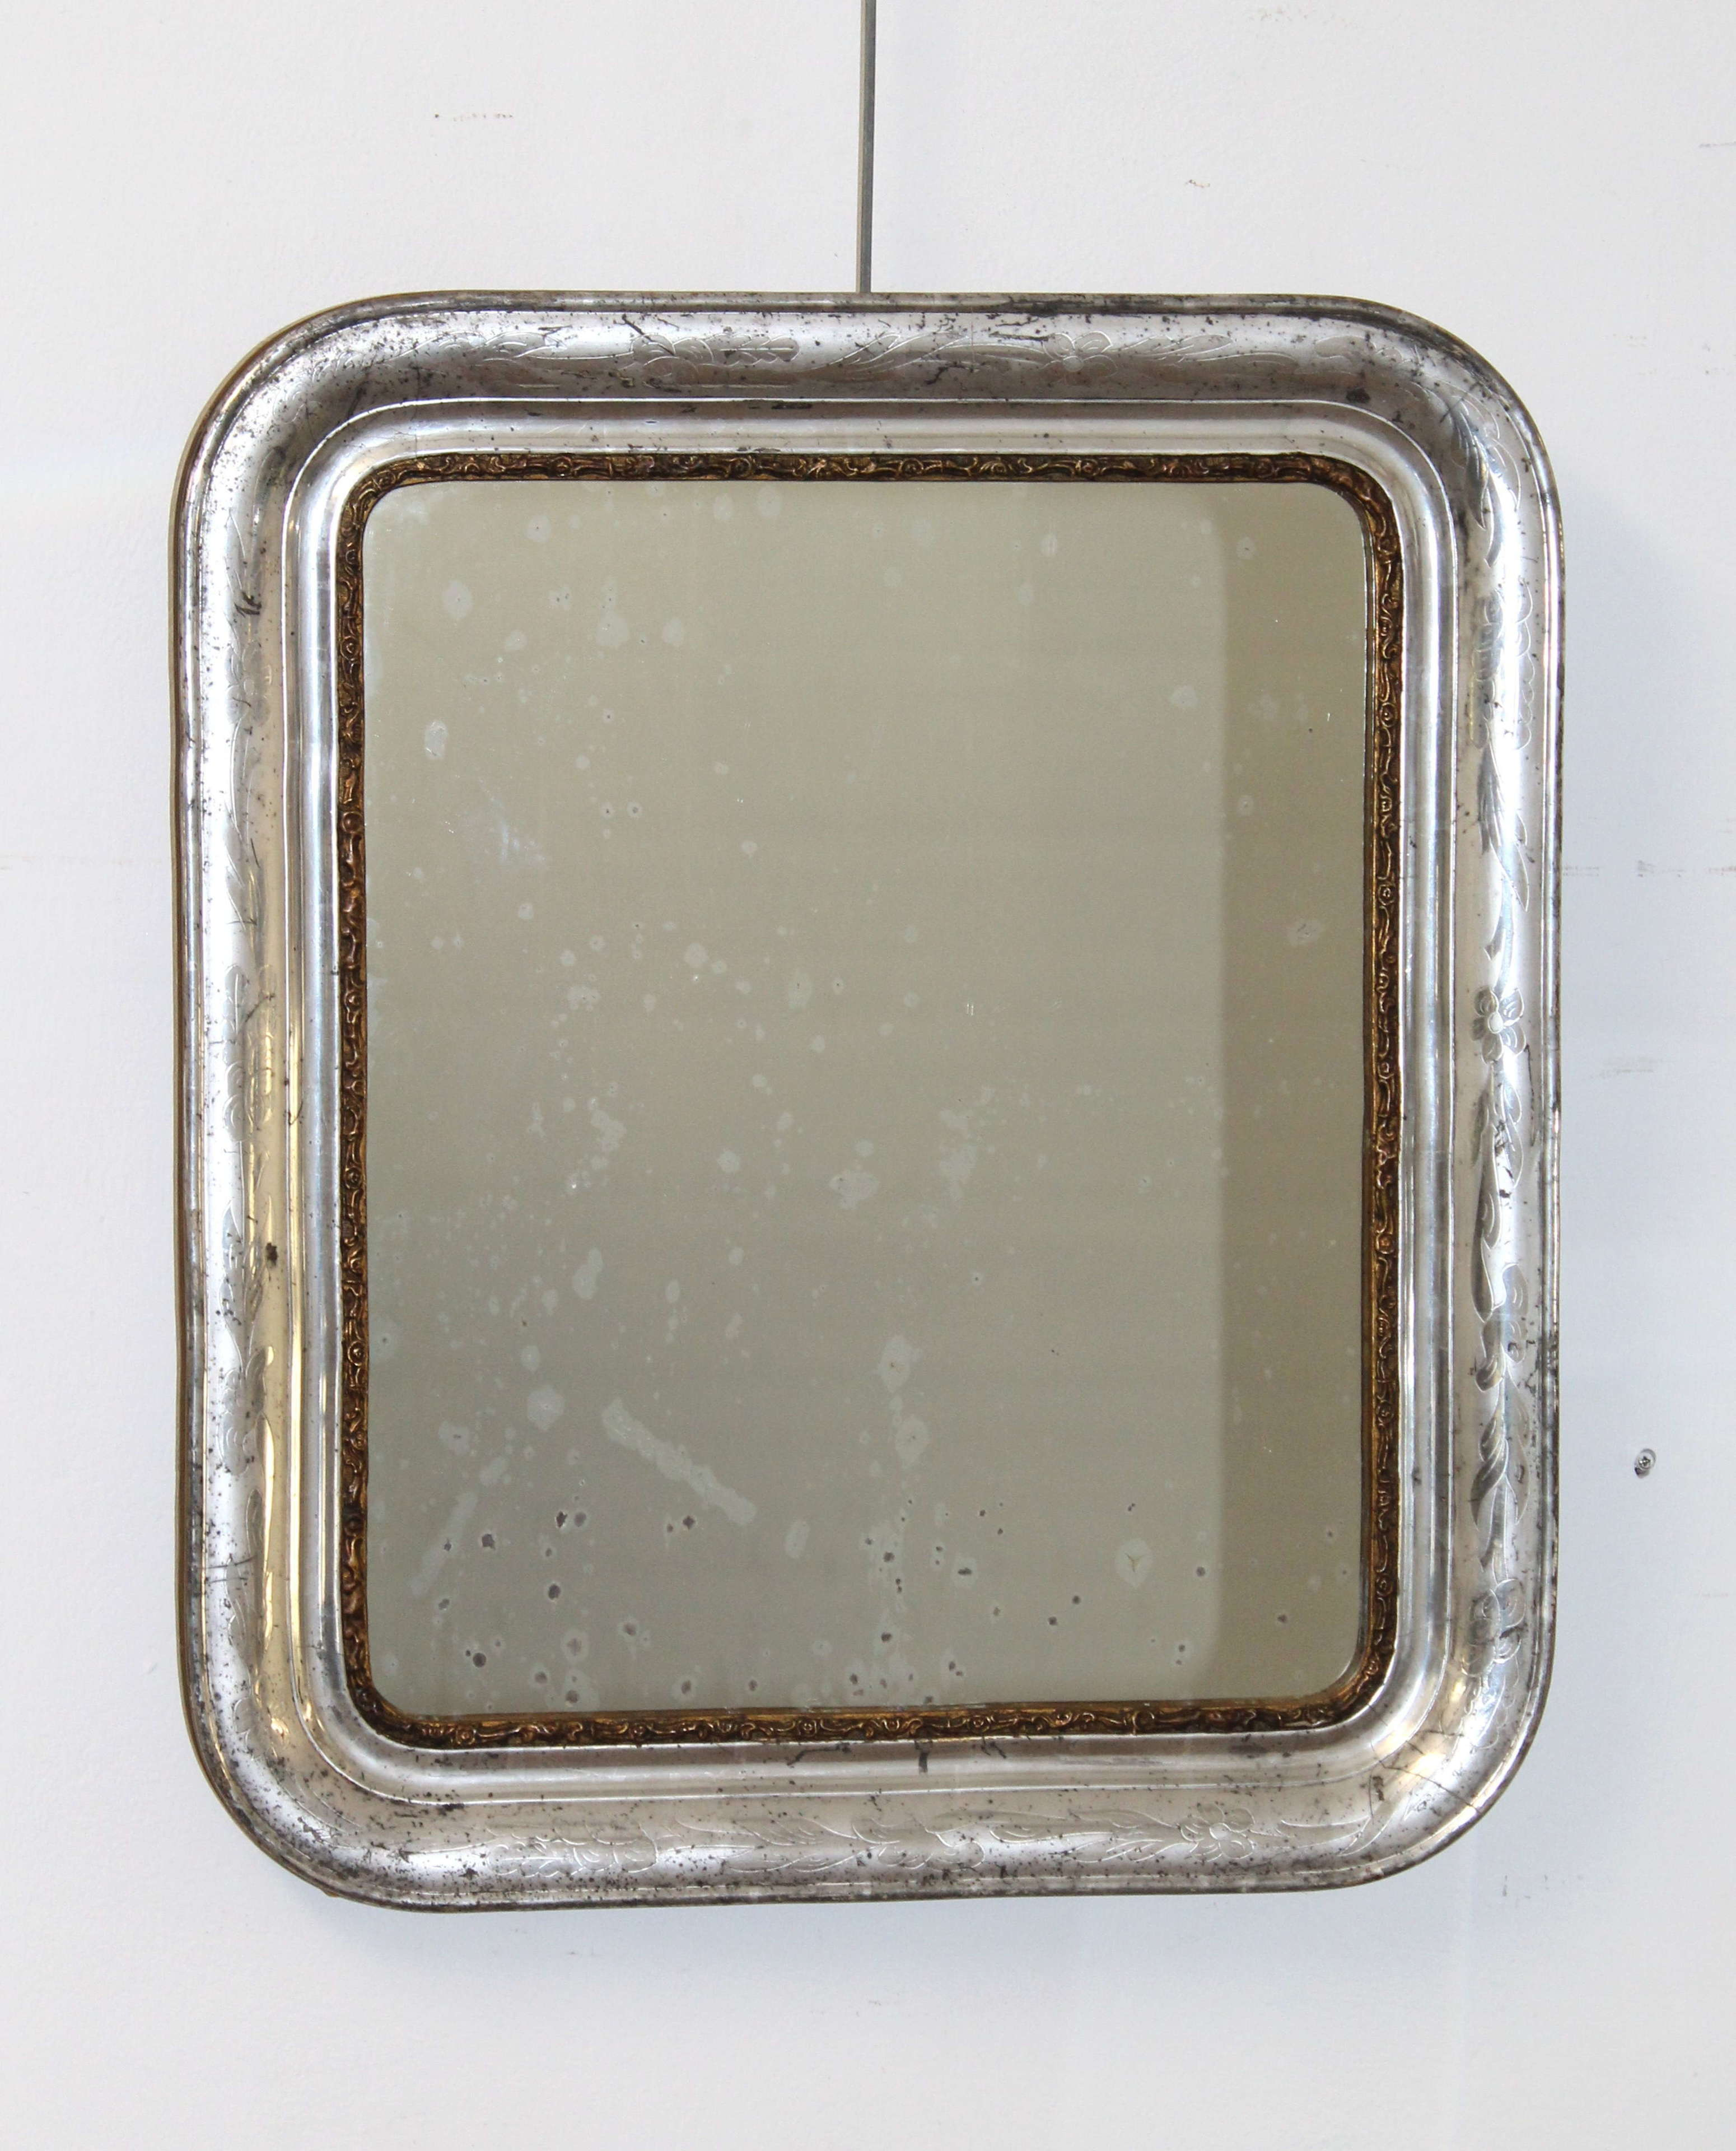 Antique silver leafed mirror with curved corners